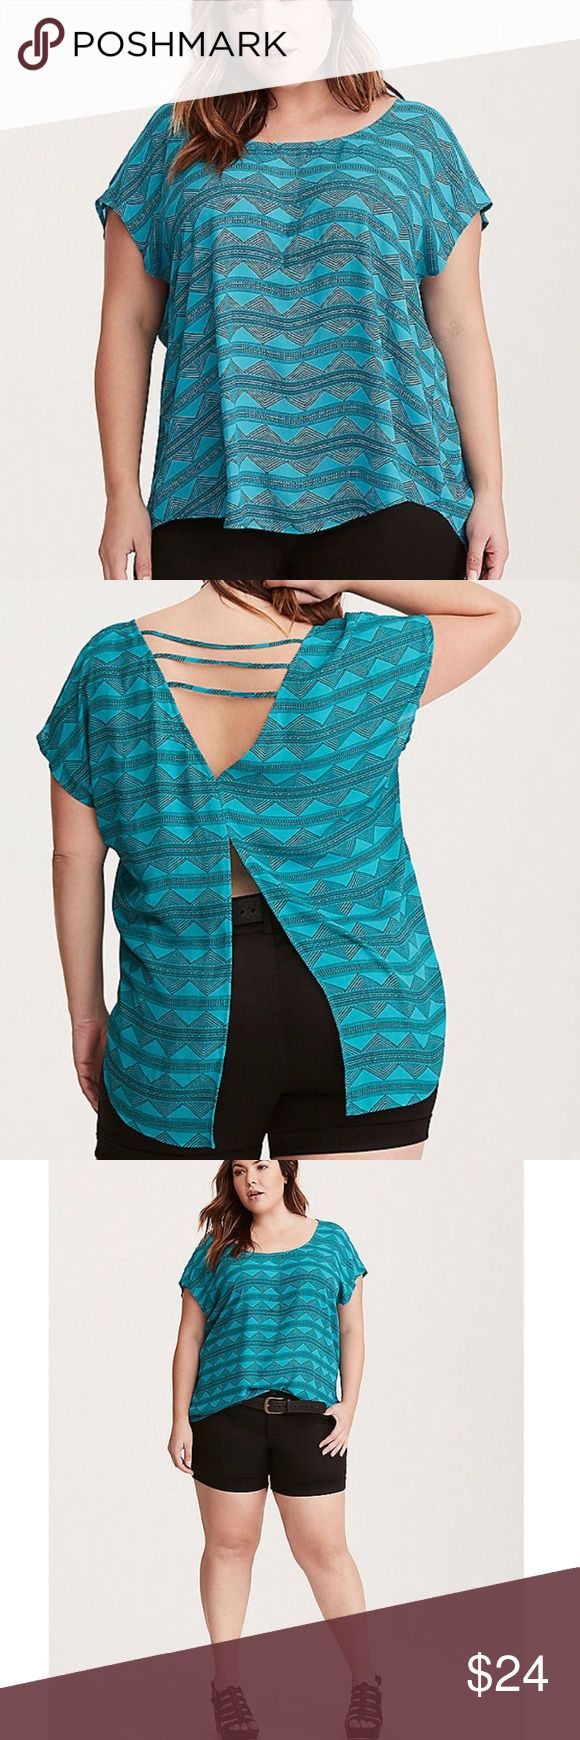 "Torrid Plus Teal Diamond Print Strappy Top Torrid Plus Size Teal Diamond Print Strappy Georgette Top. Bright teal blue with black diamond, geo print. Round neckline with short sleeves. Strappy, cutout back. Split back gives top a flowy, fit. Lightweight material. Size 2, equivalent to 2X, see Torrid size chart. NWT, new with tags. Measurements taken laid flat. 27"" bust, 31.5"" length. torrid Tops Blouses"